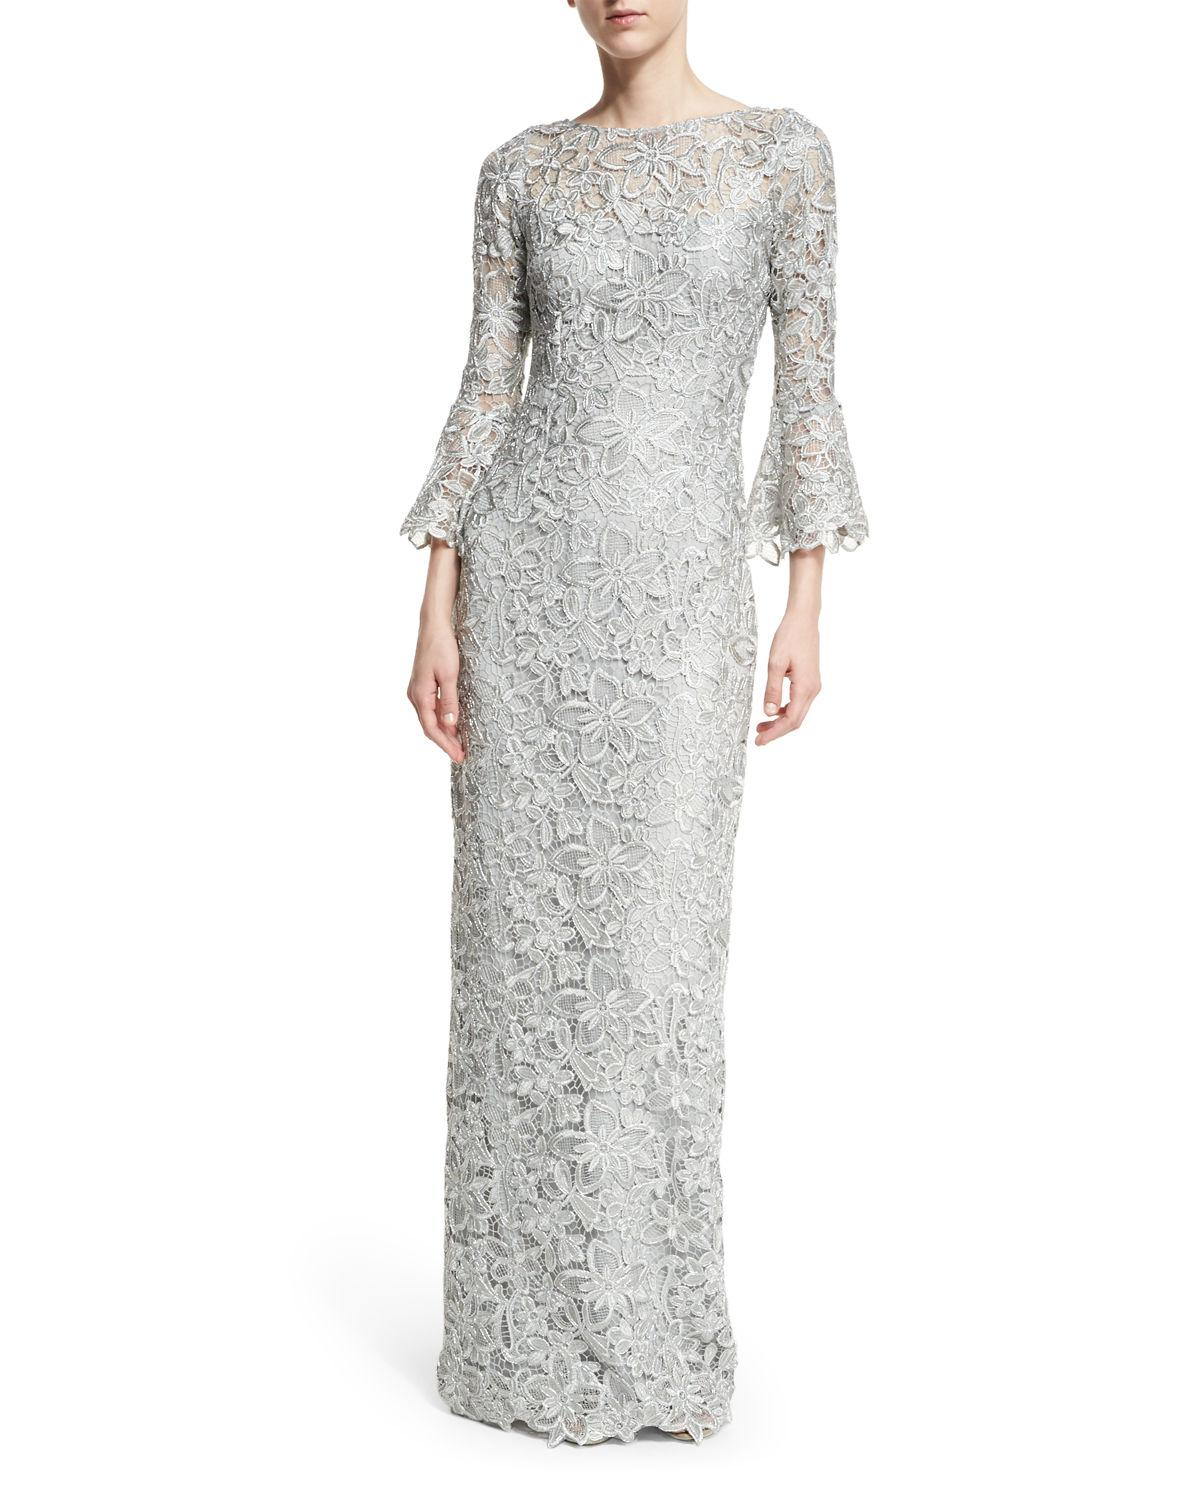 8792961a02 Lyst - Teri Jon Bell-sleeve Floral Lace Column Gown in Metallic